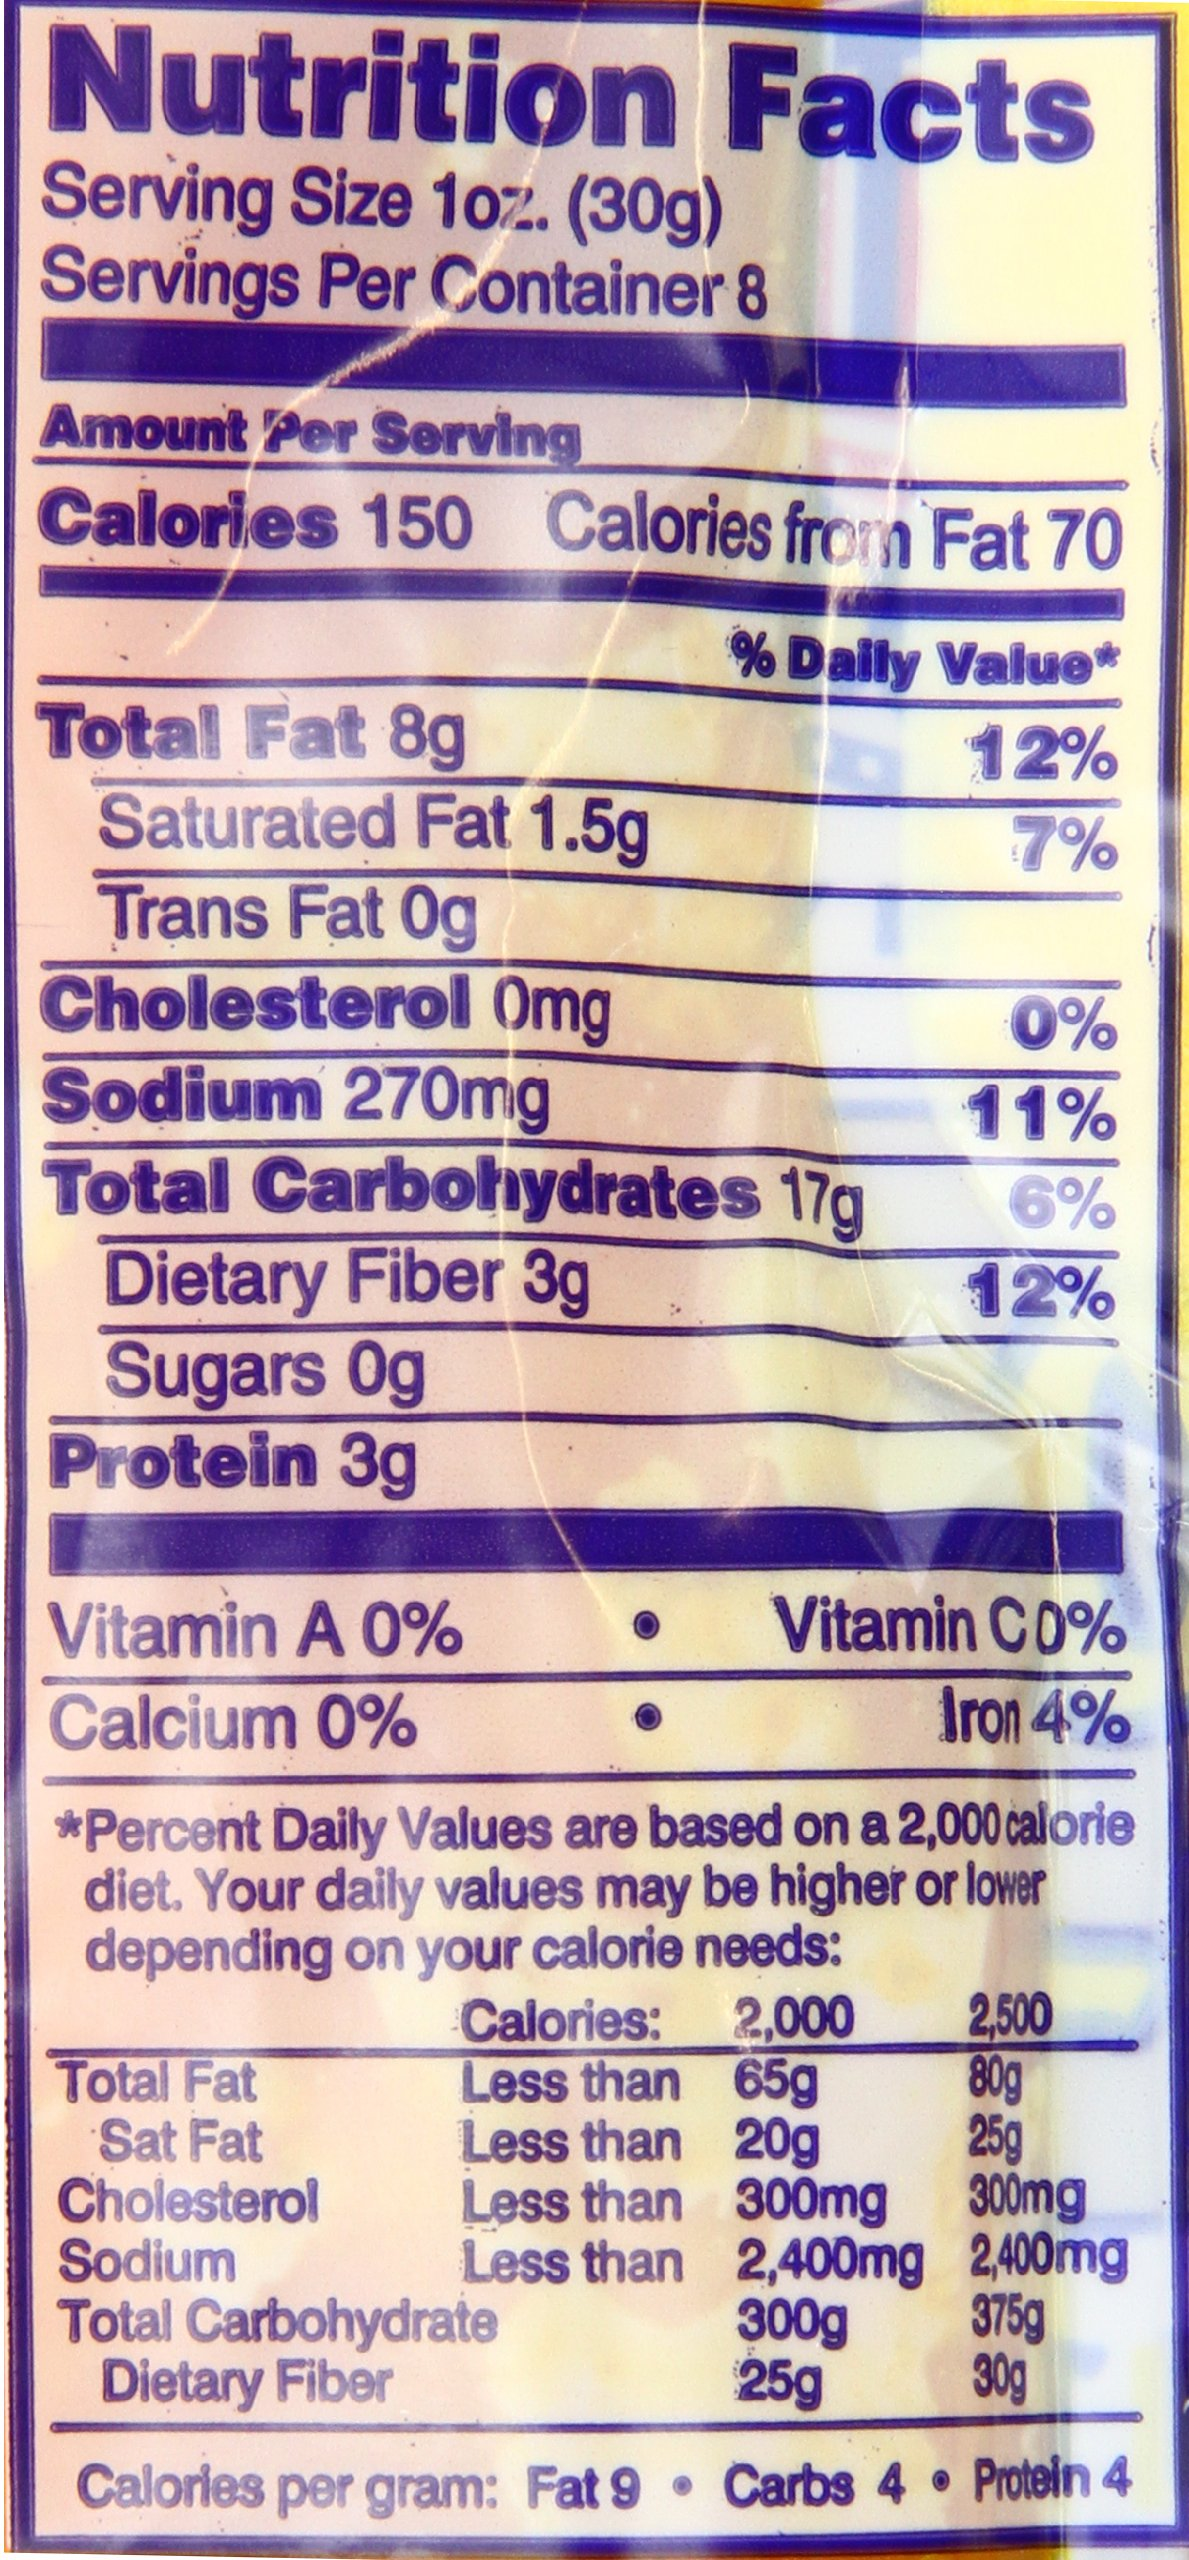 4110 Great Northern Popcorn Premium 8 Ounce Popcorn Portion Packs, Case of 24 by Great Northern Popcorn Company (Image #2)